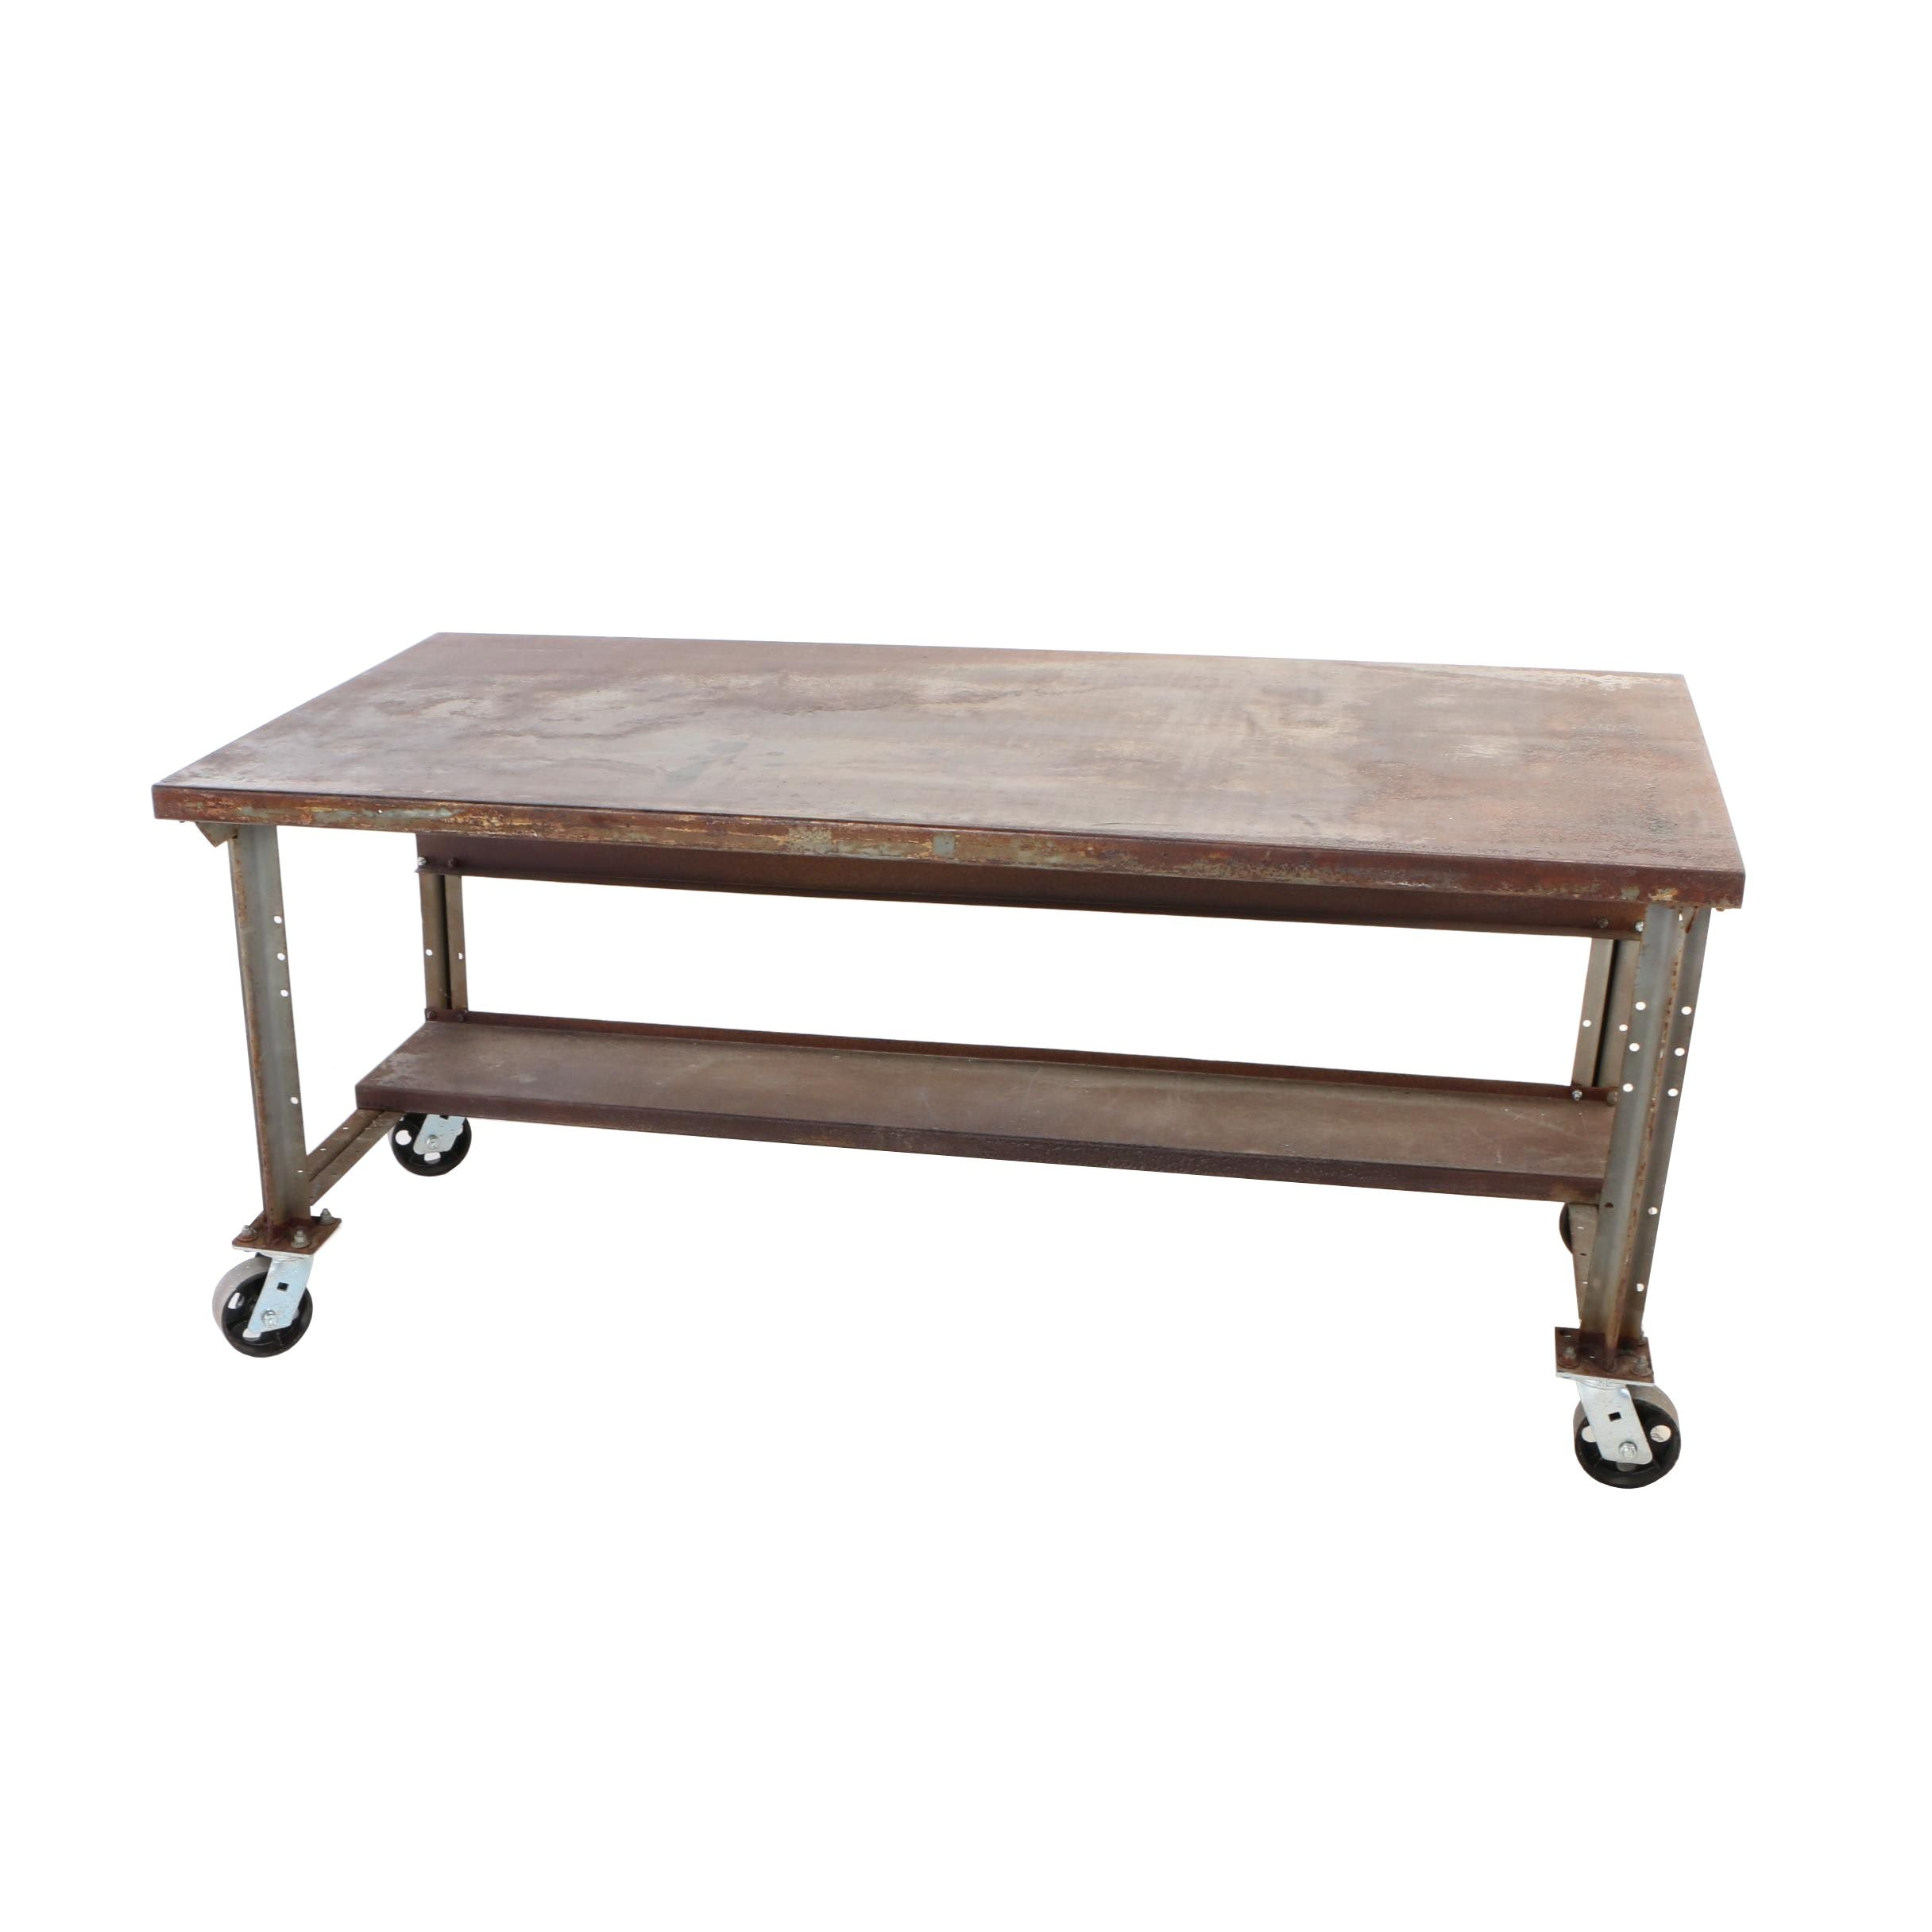 Industrial Steel Rolling Work Table, 20th Century